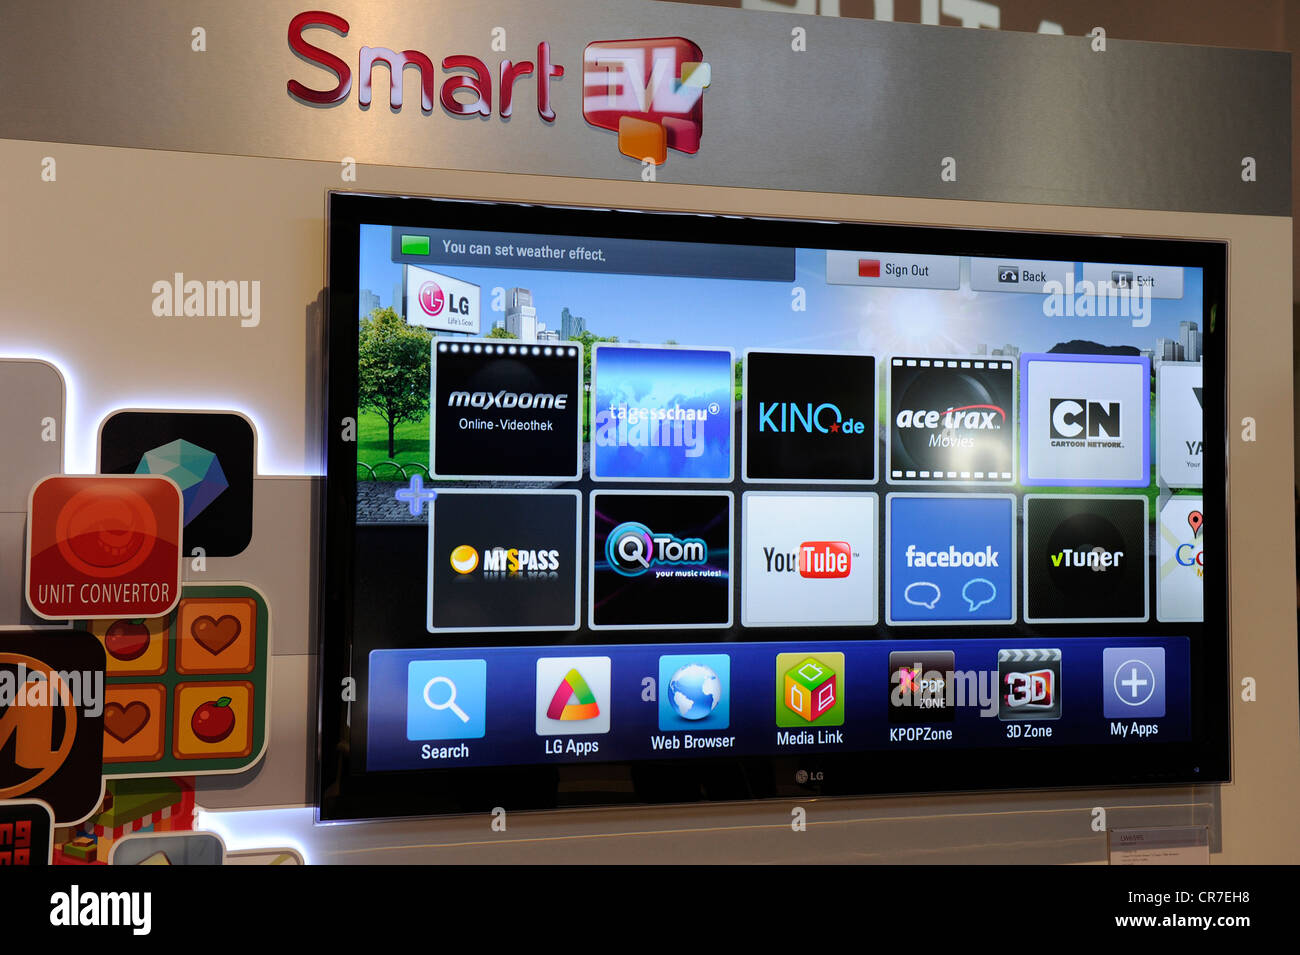 Smart tv a combination of tv and internet internationale funkausstellung exhibition ifa 2011 berlin germany europe